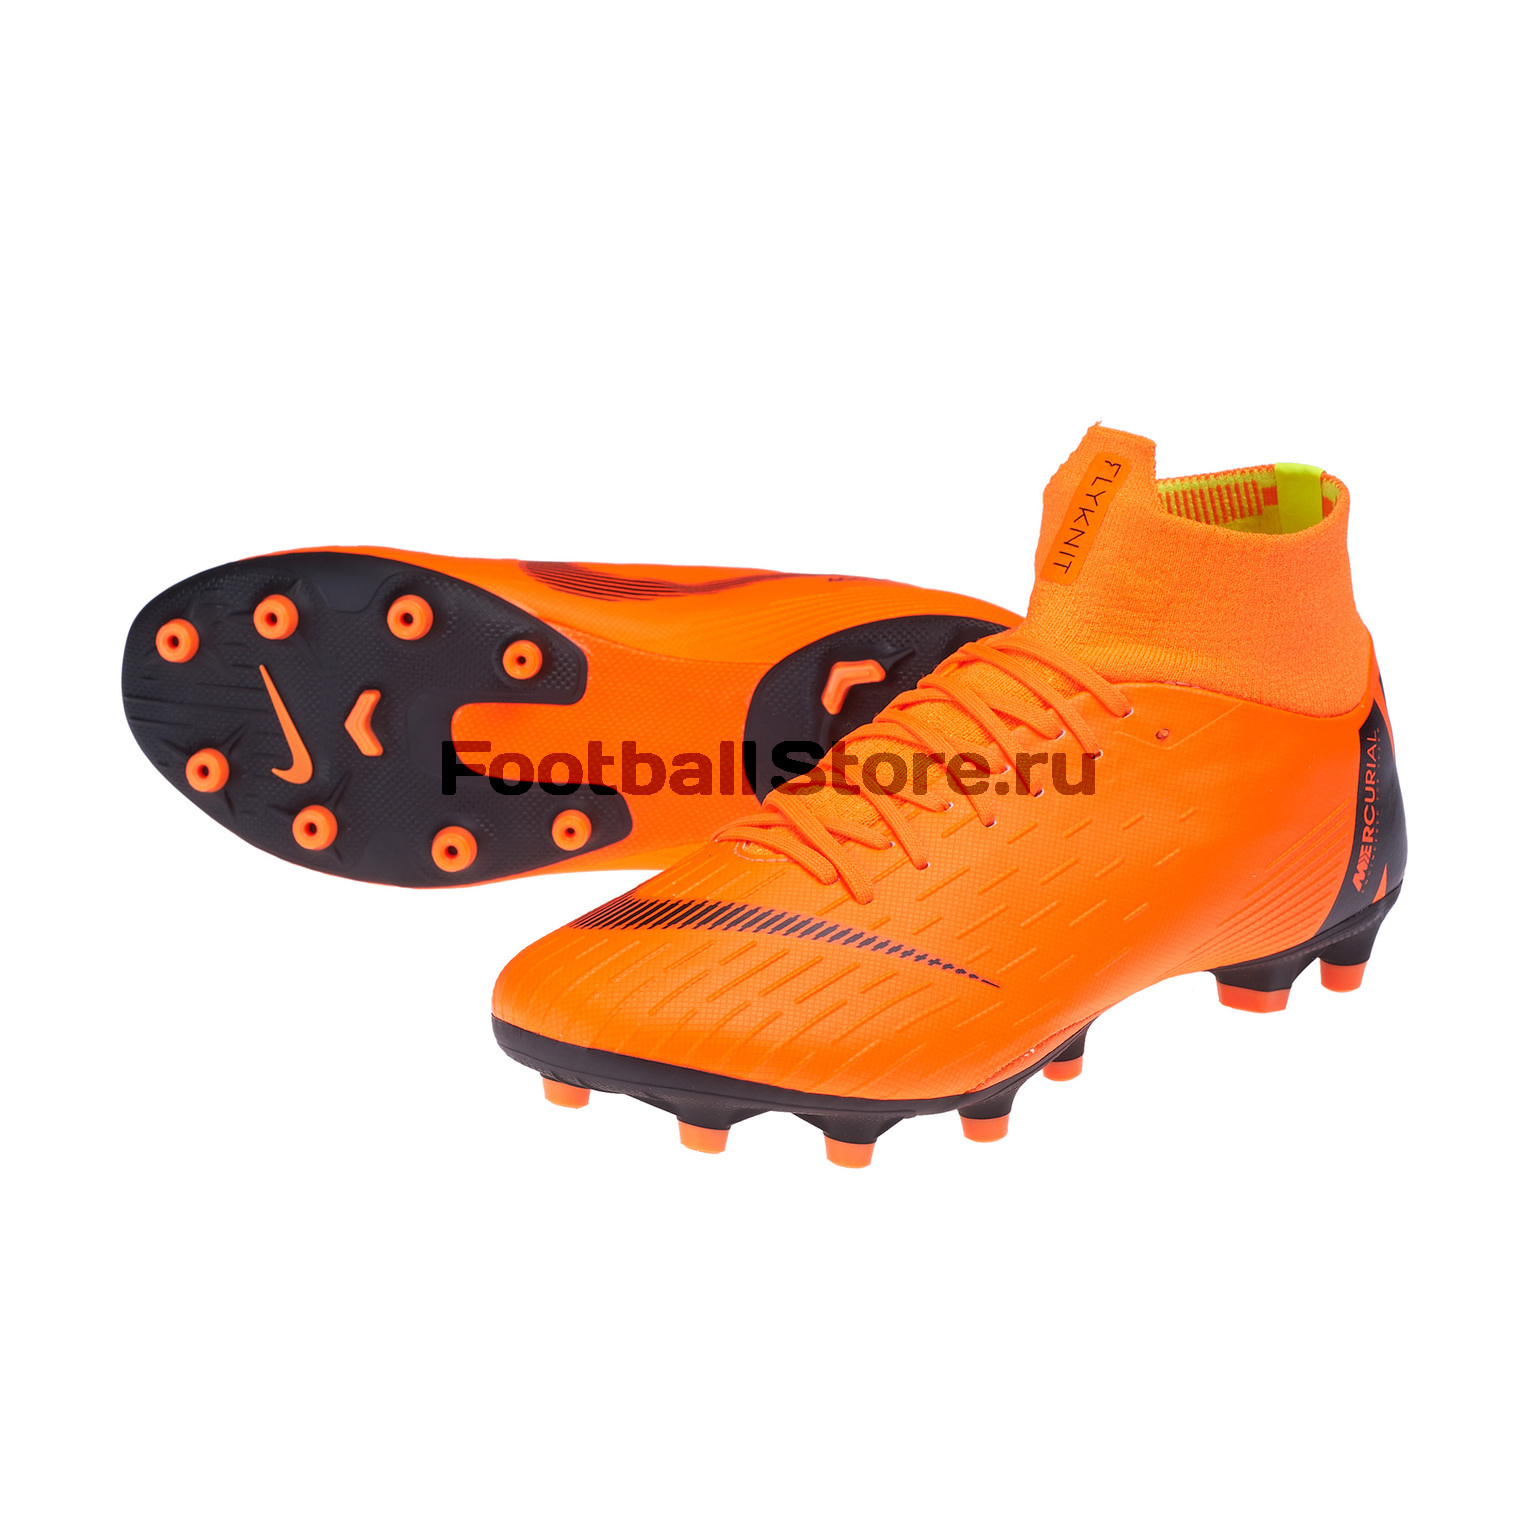 Бутсы Nike Superfly 6 Pro AG-Pro AH7367-810 бутсы nike шиповки nike jr tiempox legend vi tf 819191 018